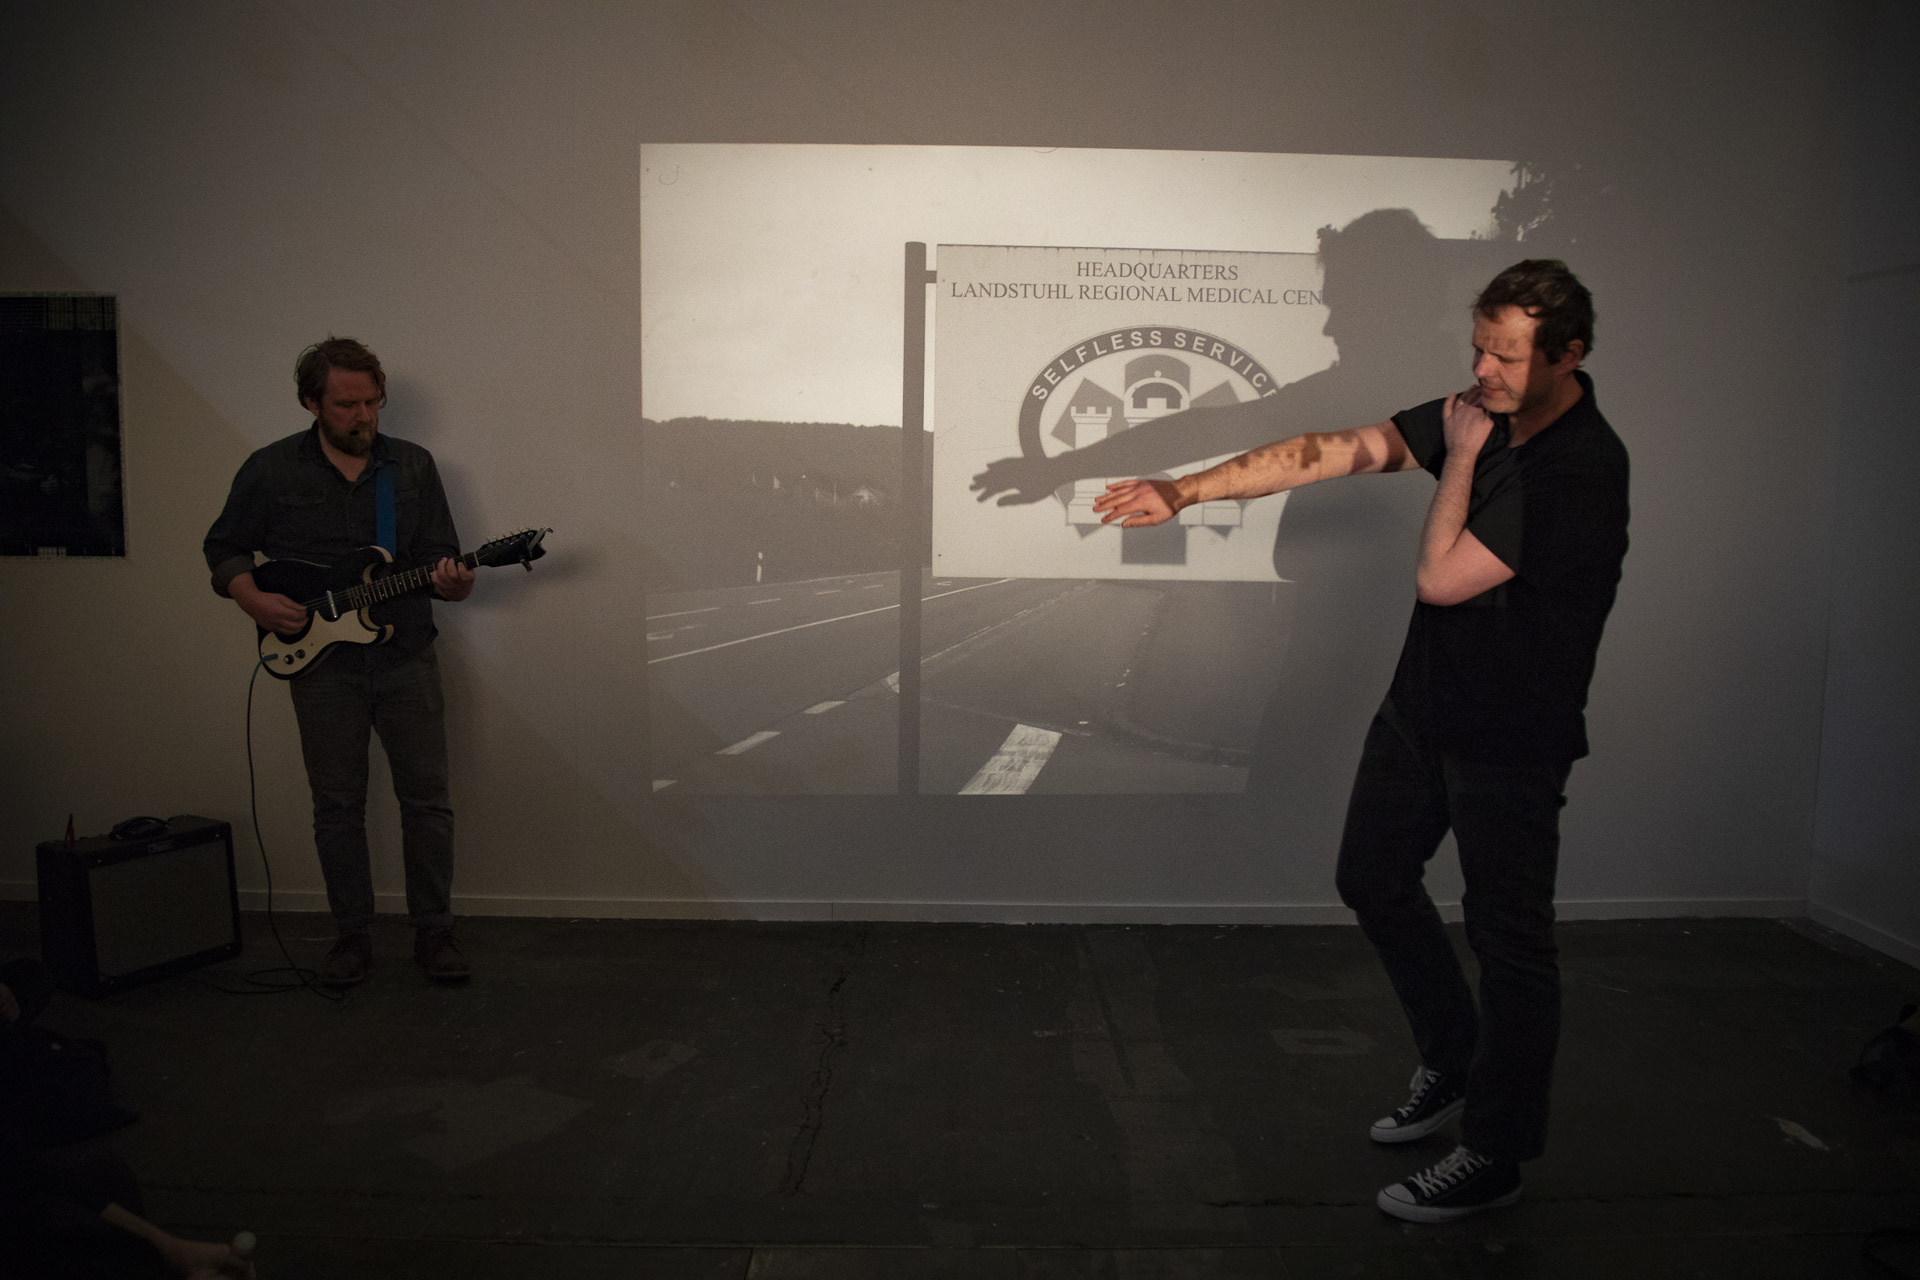 ARCO 2018 - Performance To a Person Sitting in Darkness